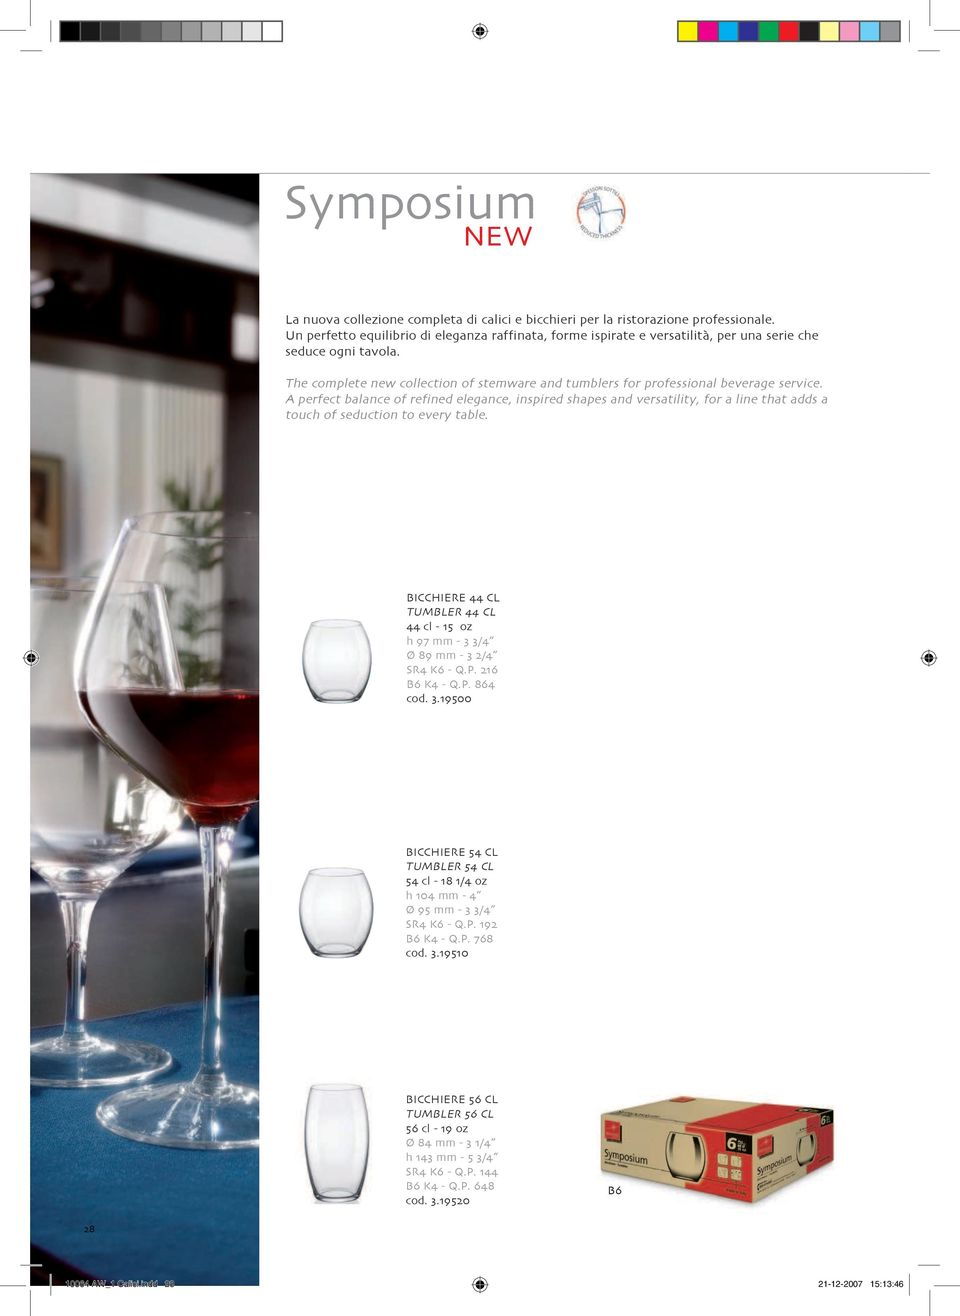 The complete new collection of stemware and tumblers for professional beverage service.